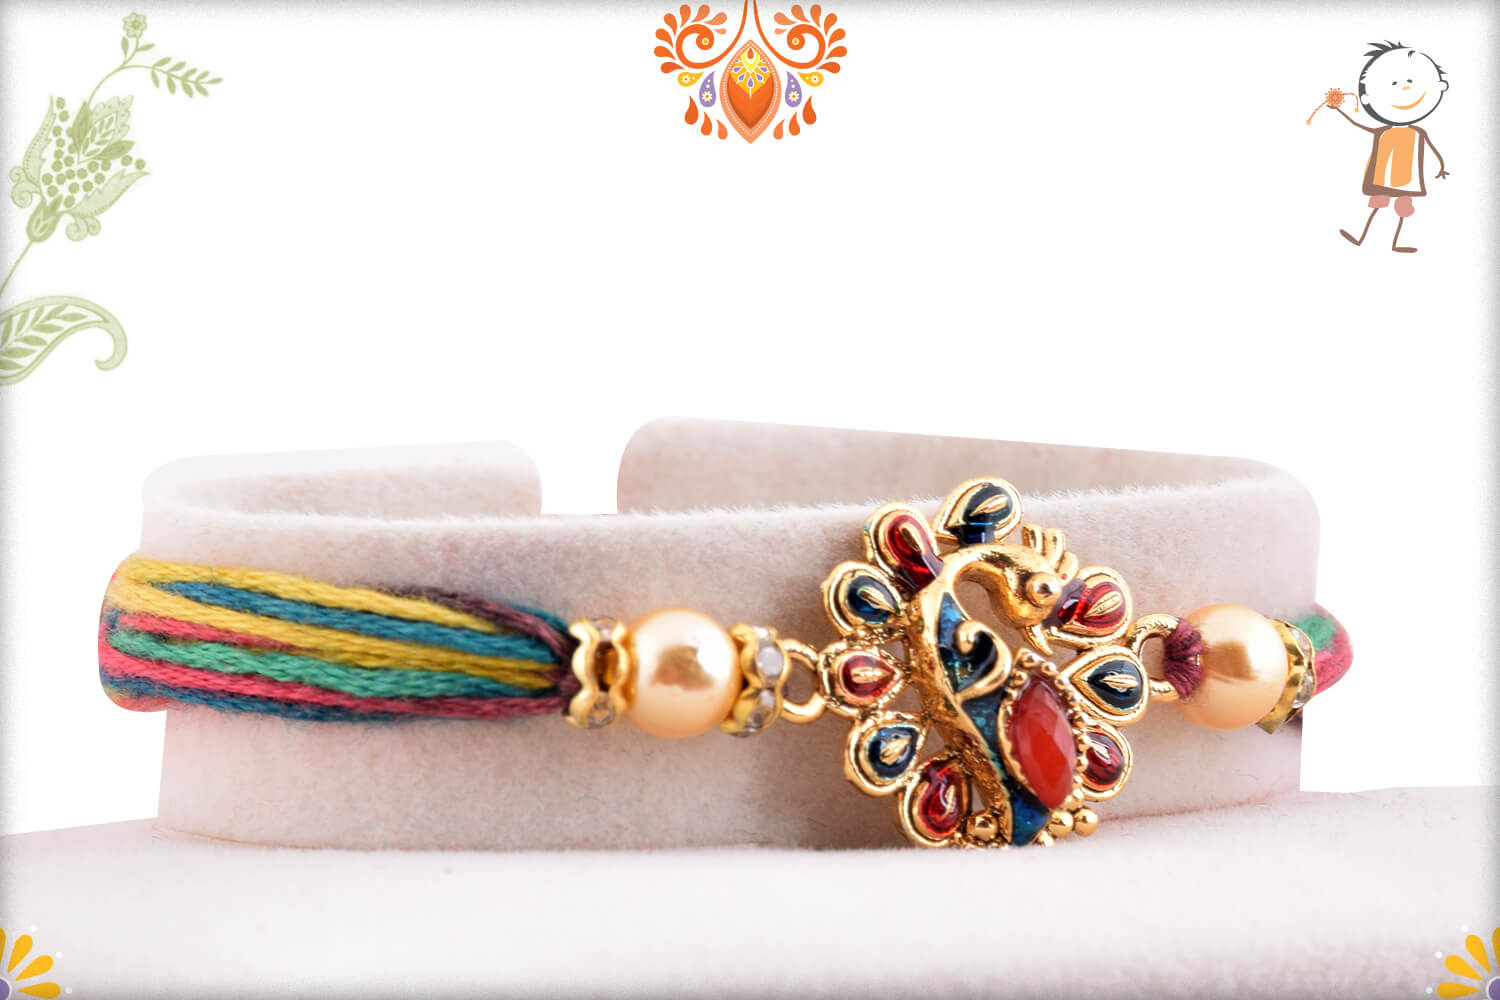 Stunning Golden Metalique Peacock With Colorful Thread Rakhi 1